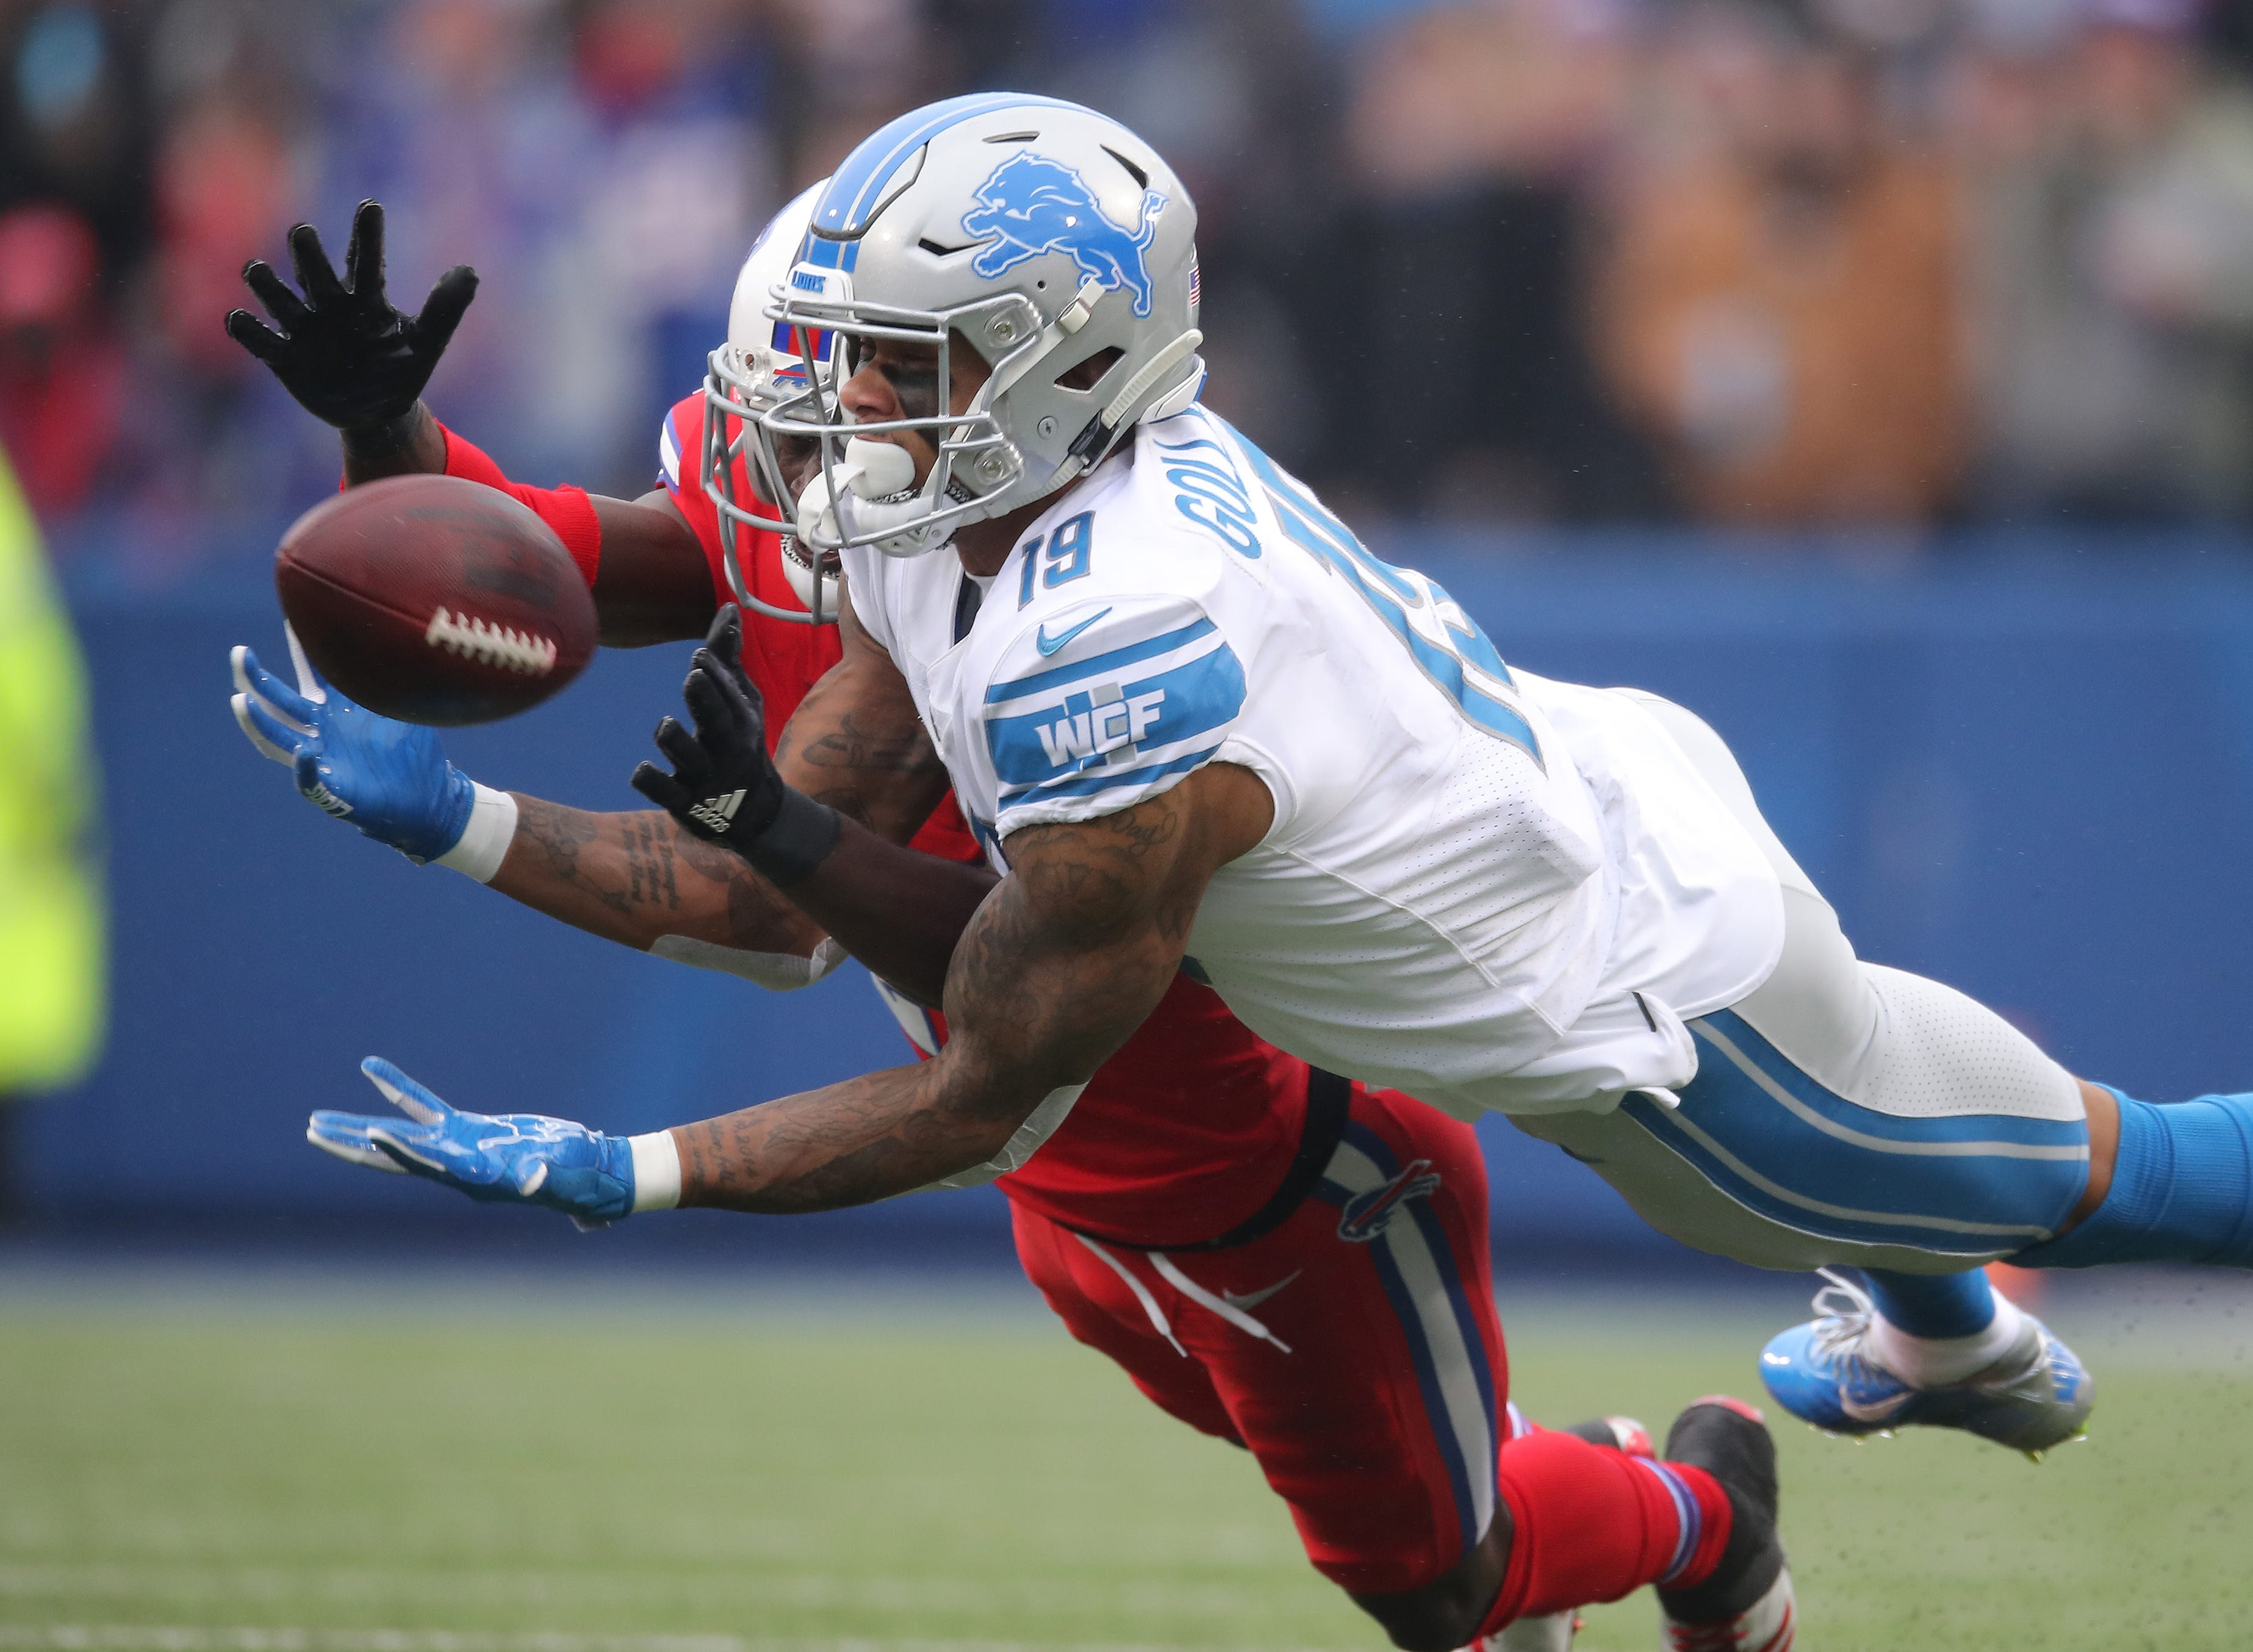 Lions wide receiver Kenny Golladay cannot hold on to a pass as Bills defensive back TreDavious White plays defense on Sunday, Dec. 16, 2018, in Orchard Park, N.Y.